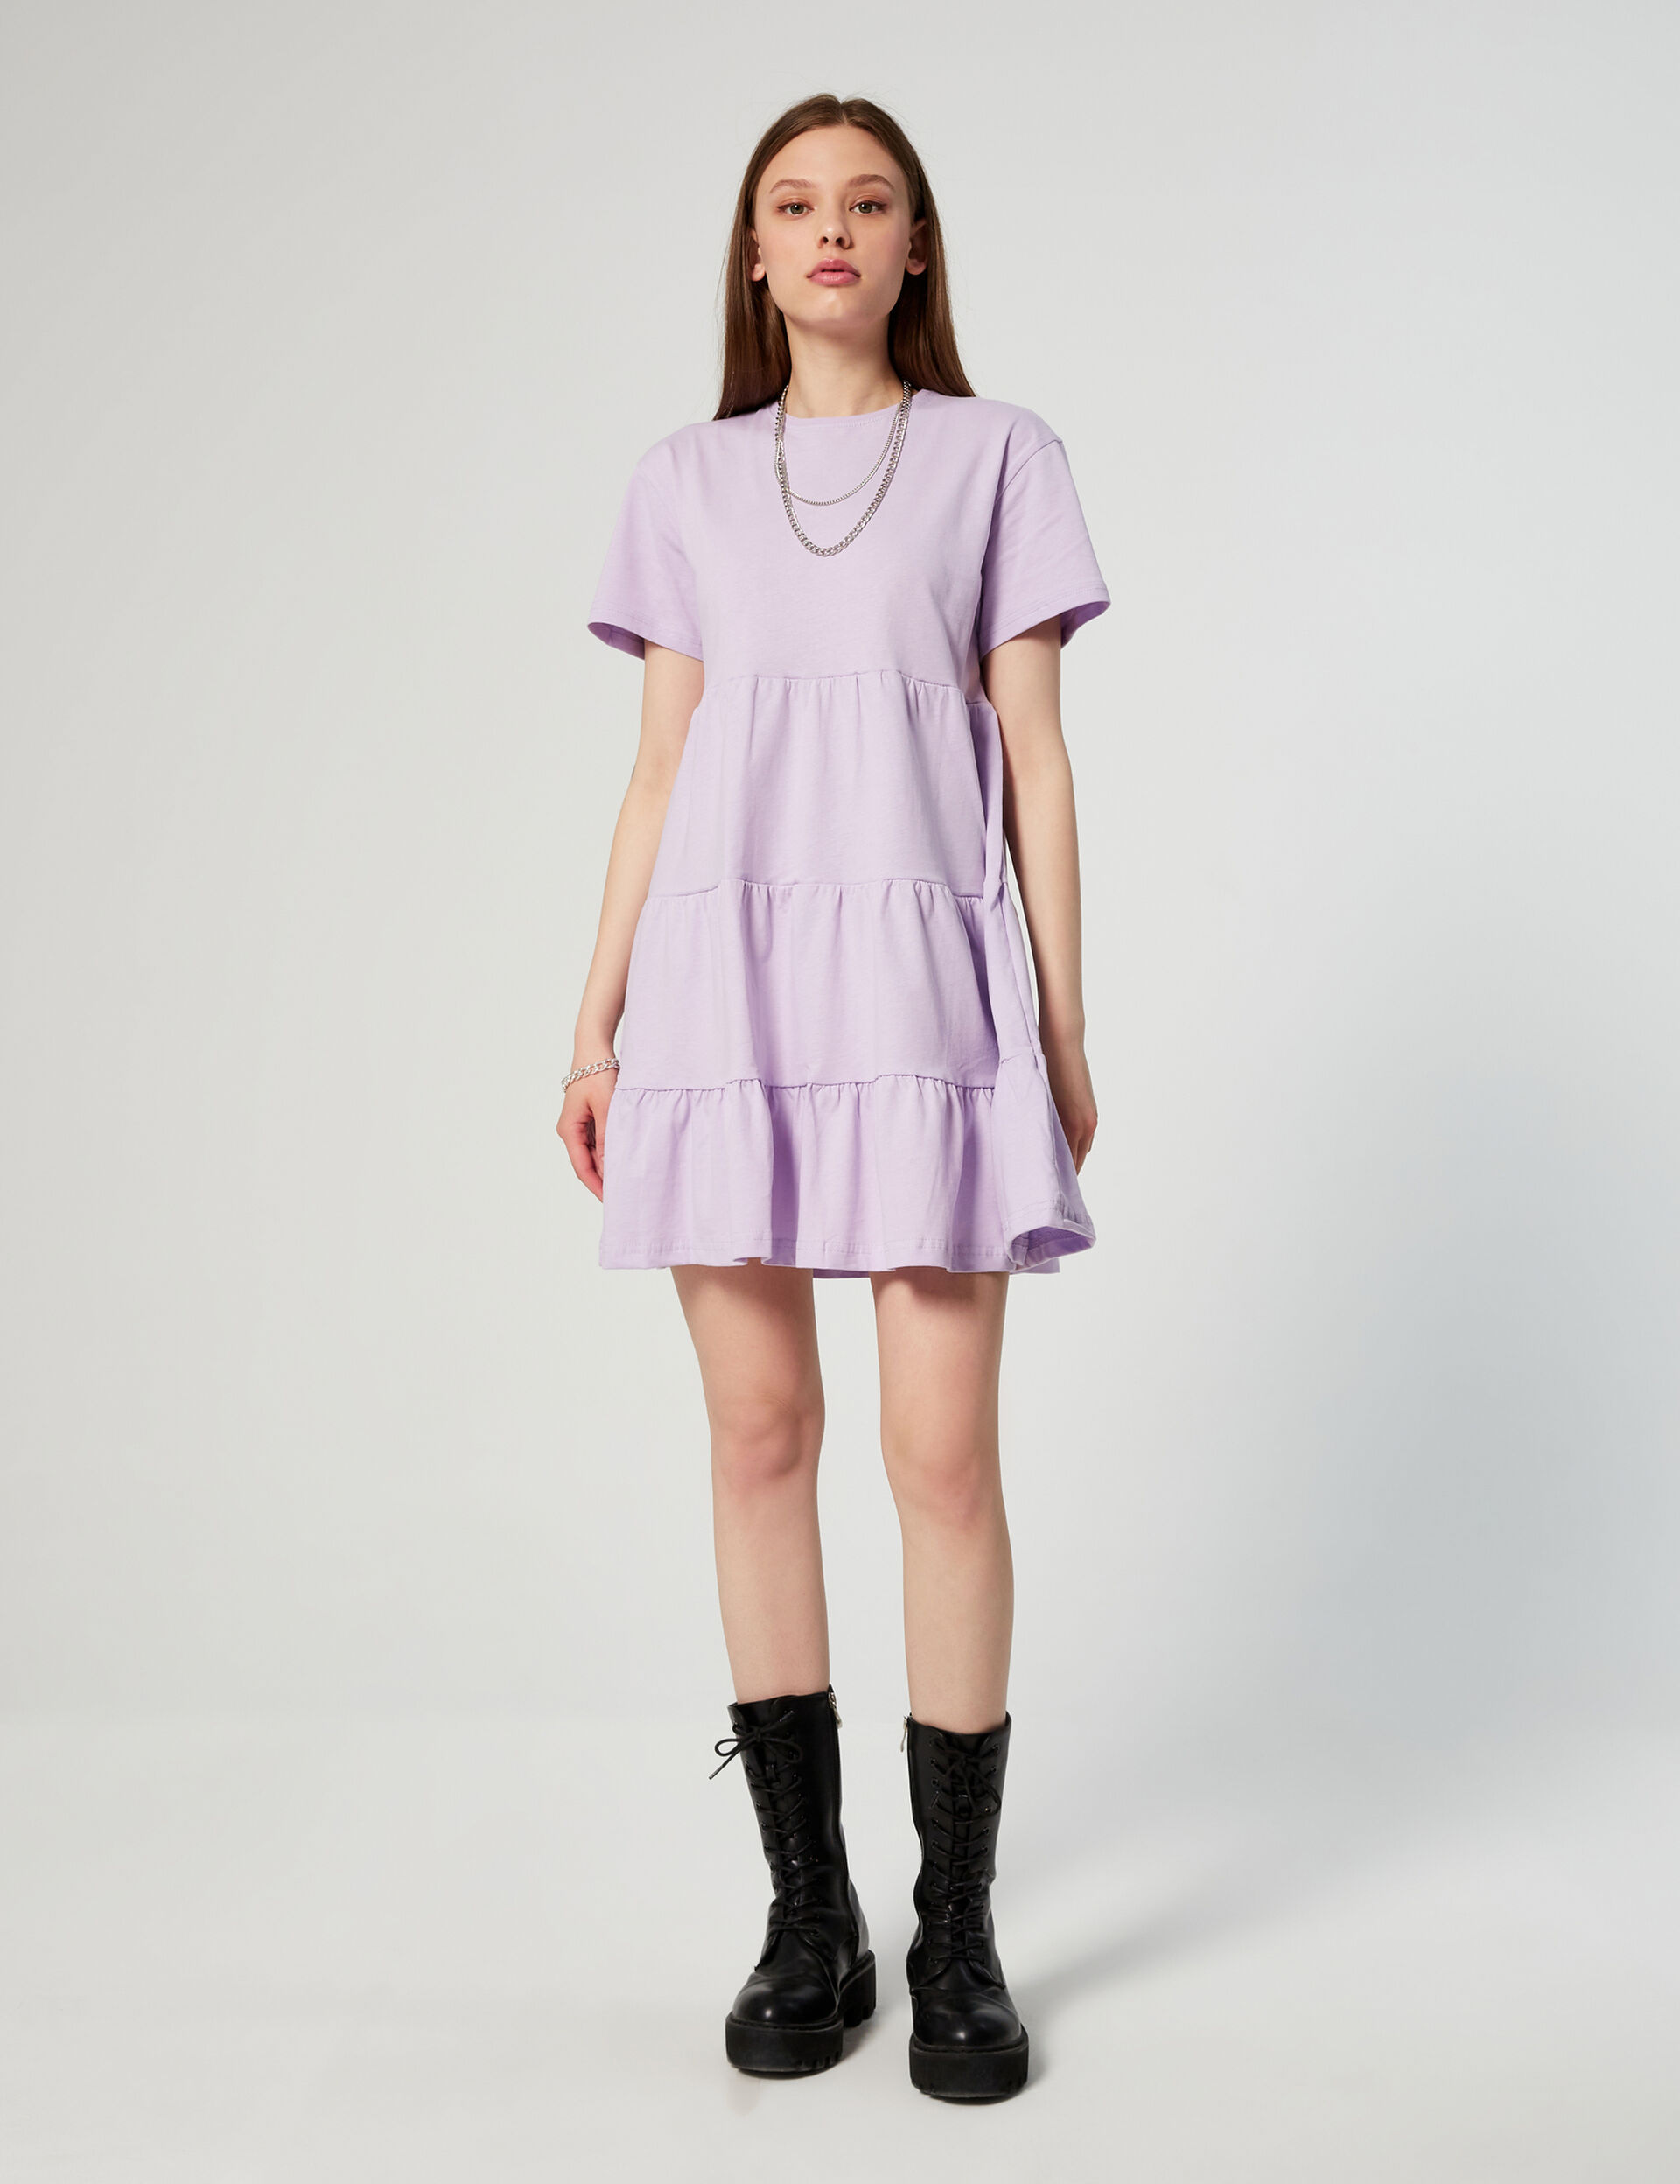 Dress with frill detail